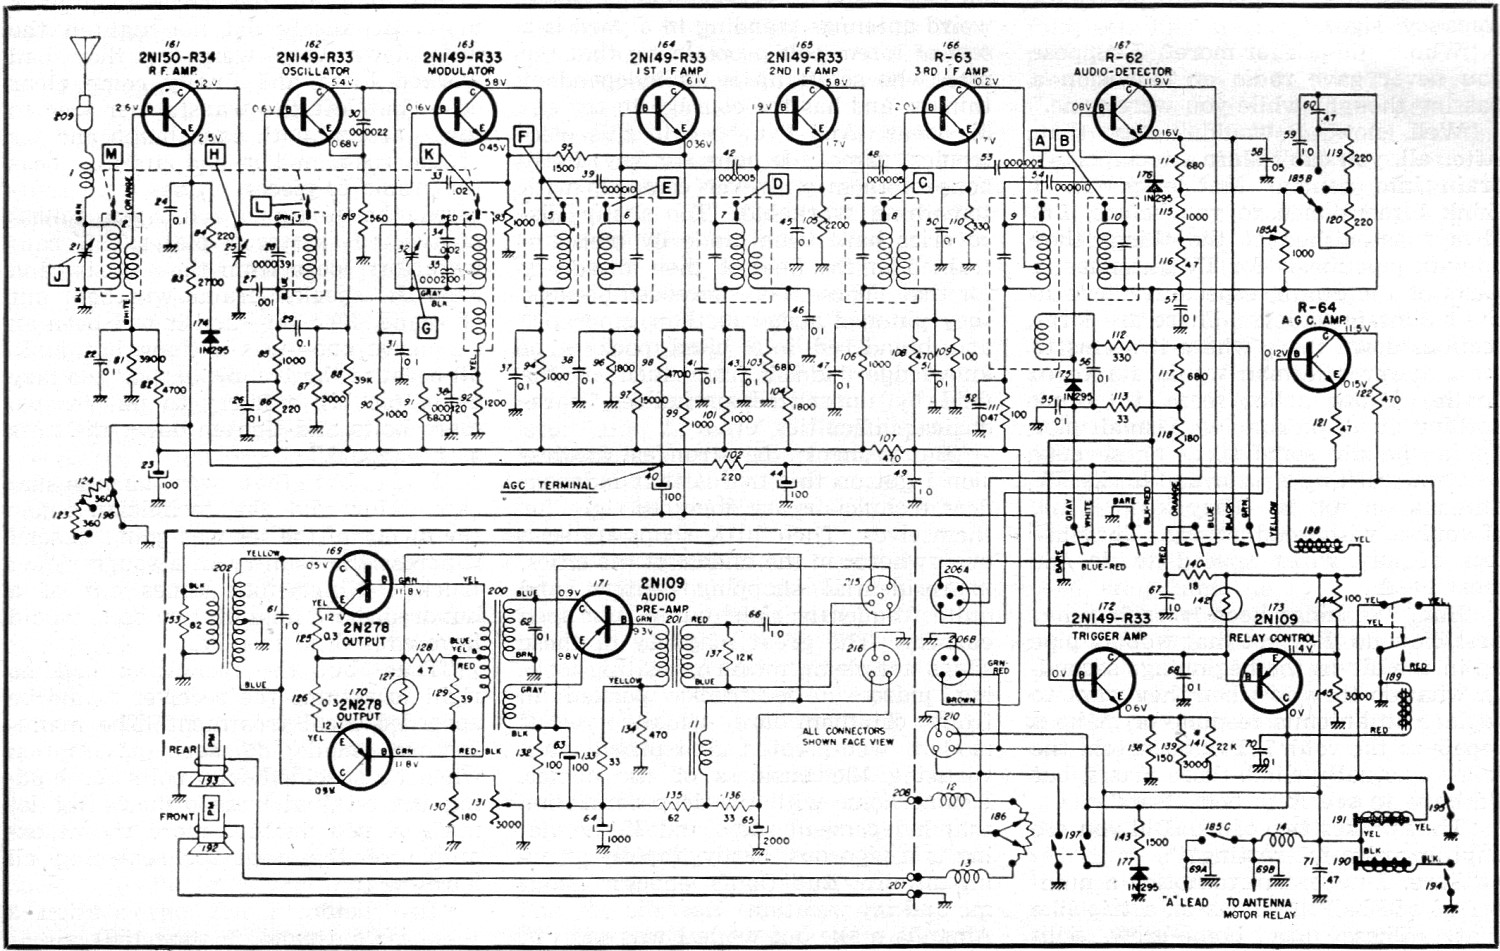 Delphi Radio Wiring Diagram on 1957 cadillac wiring diagram